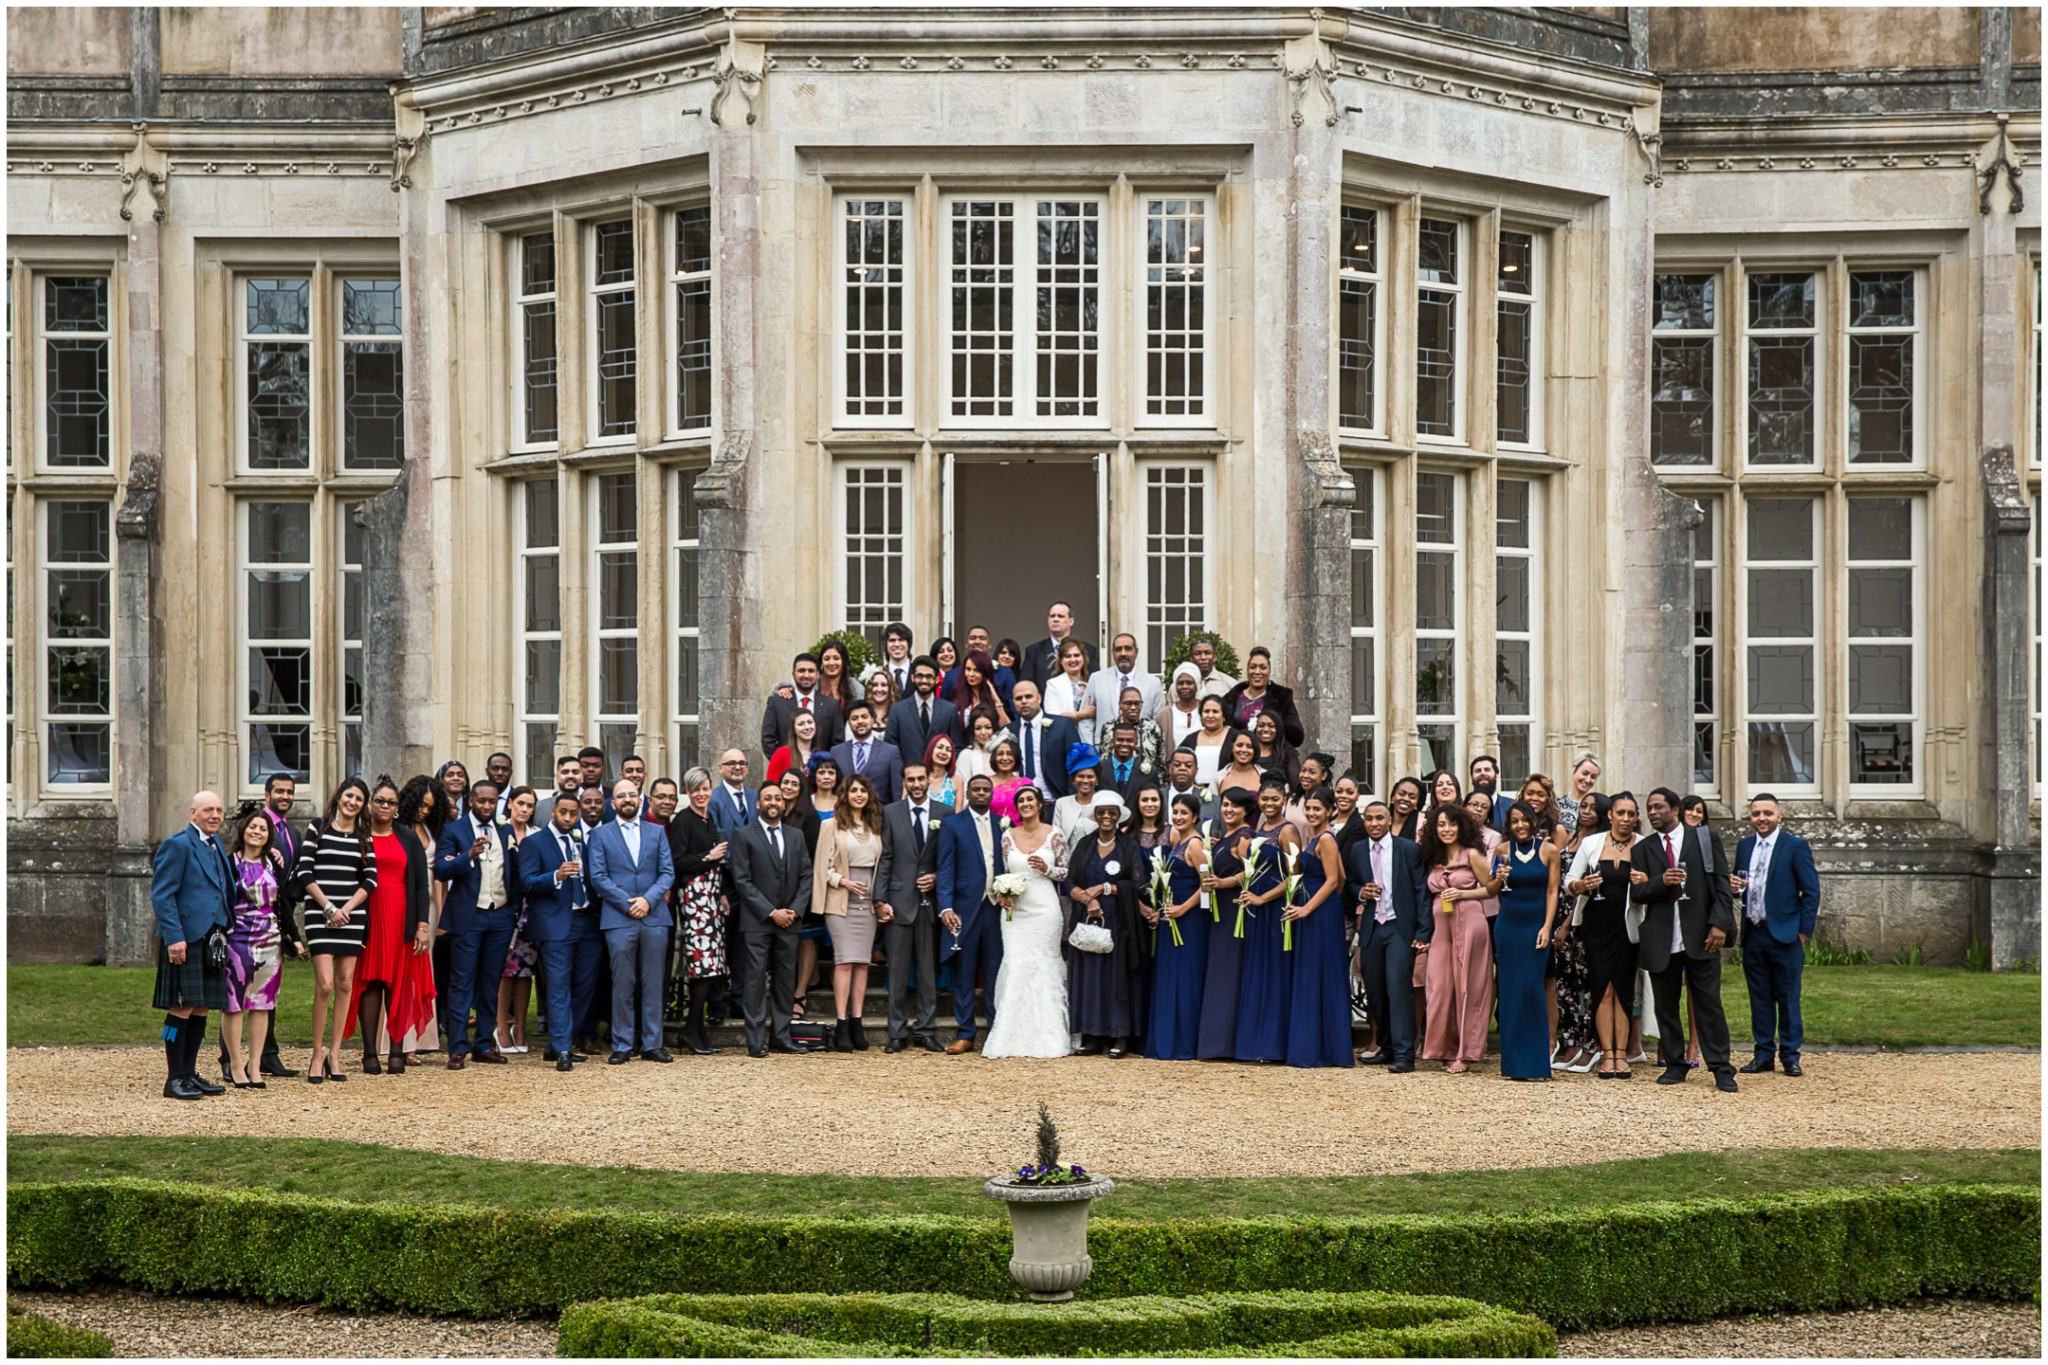 Highcliffe Castle Wedding Full Guest Group shot